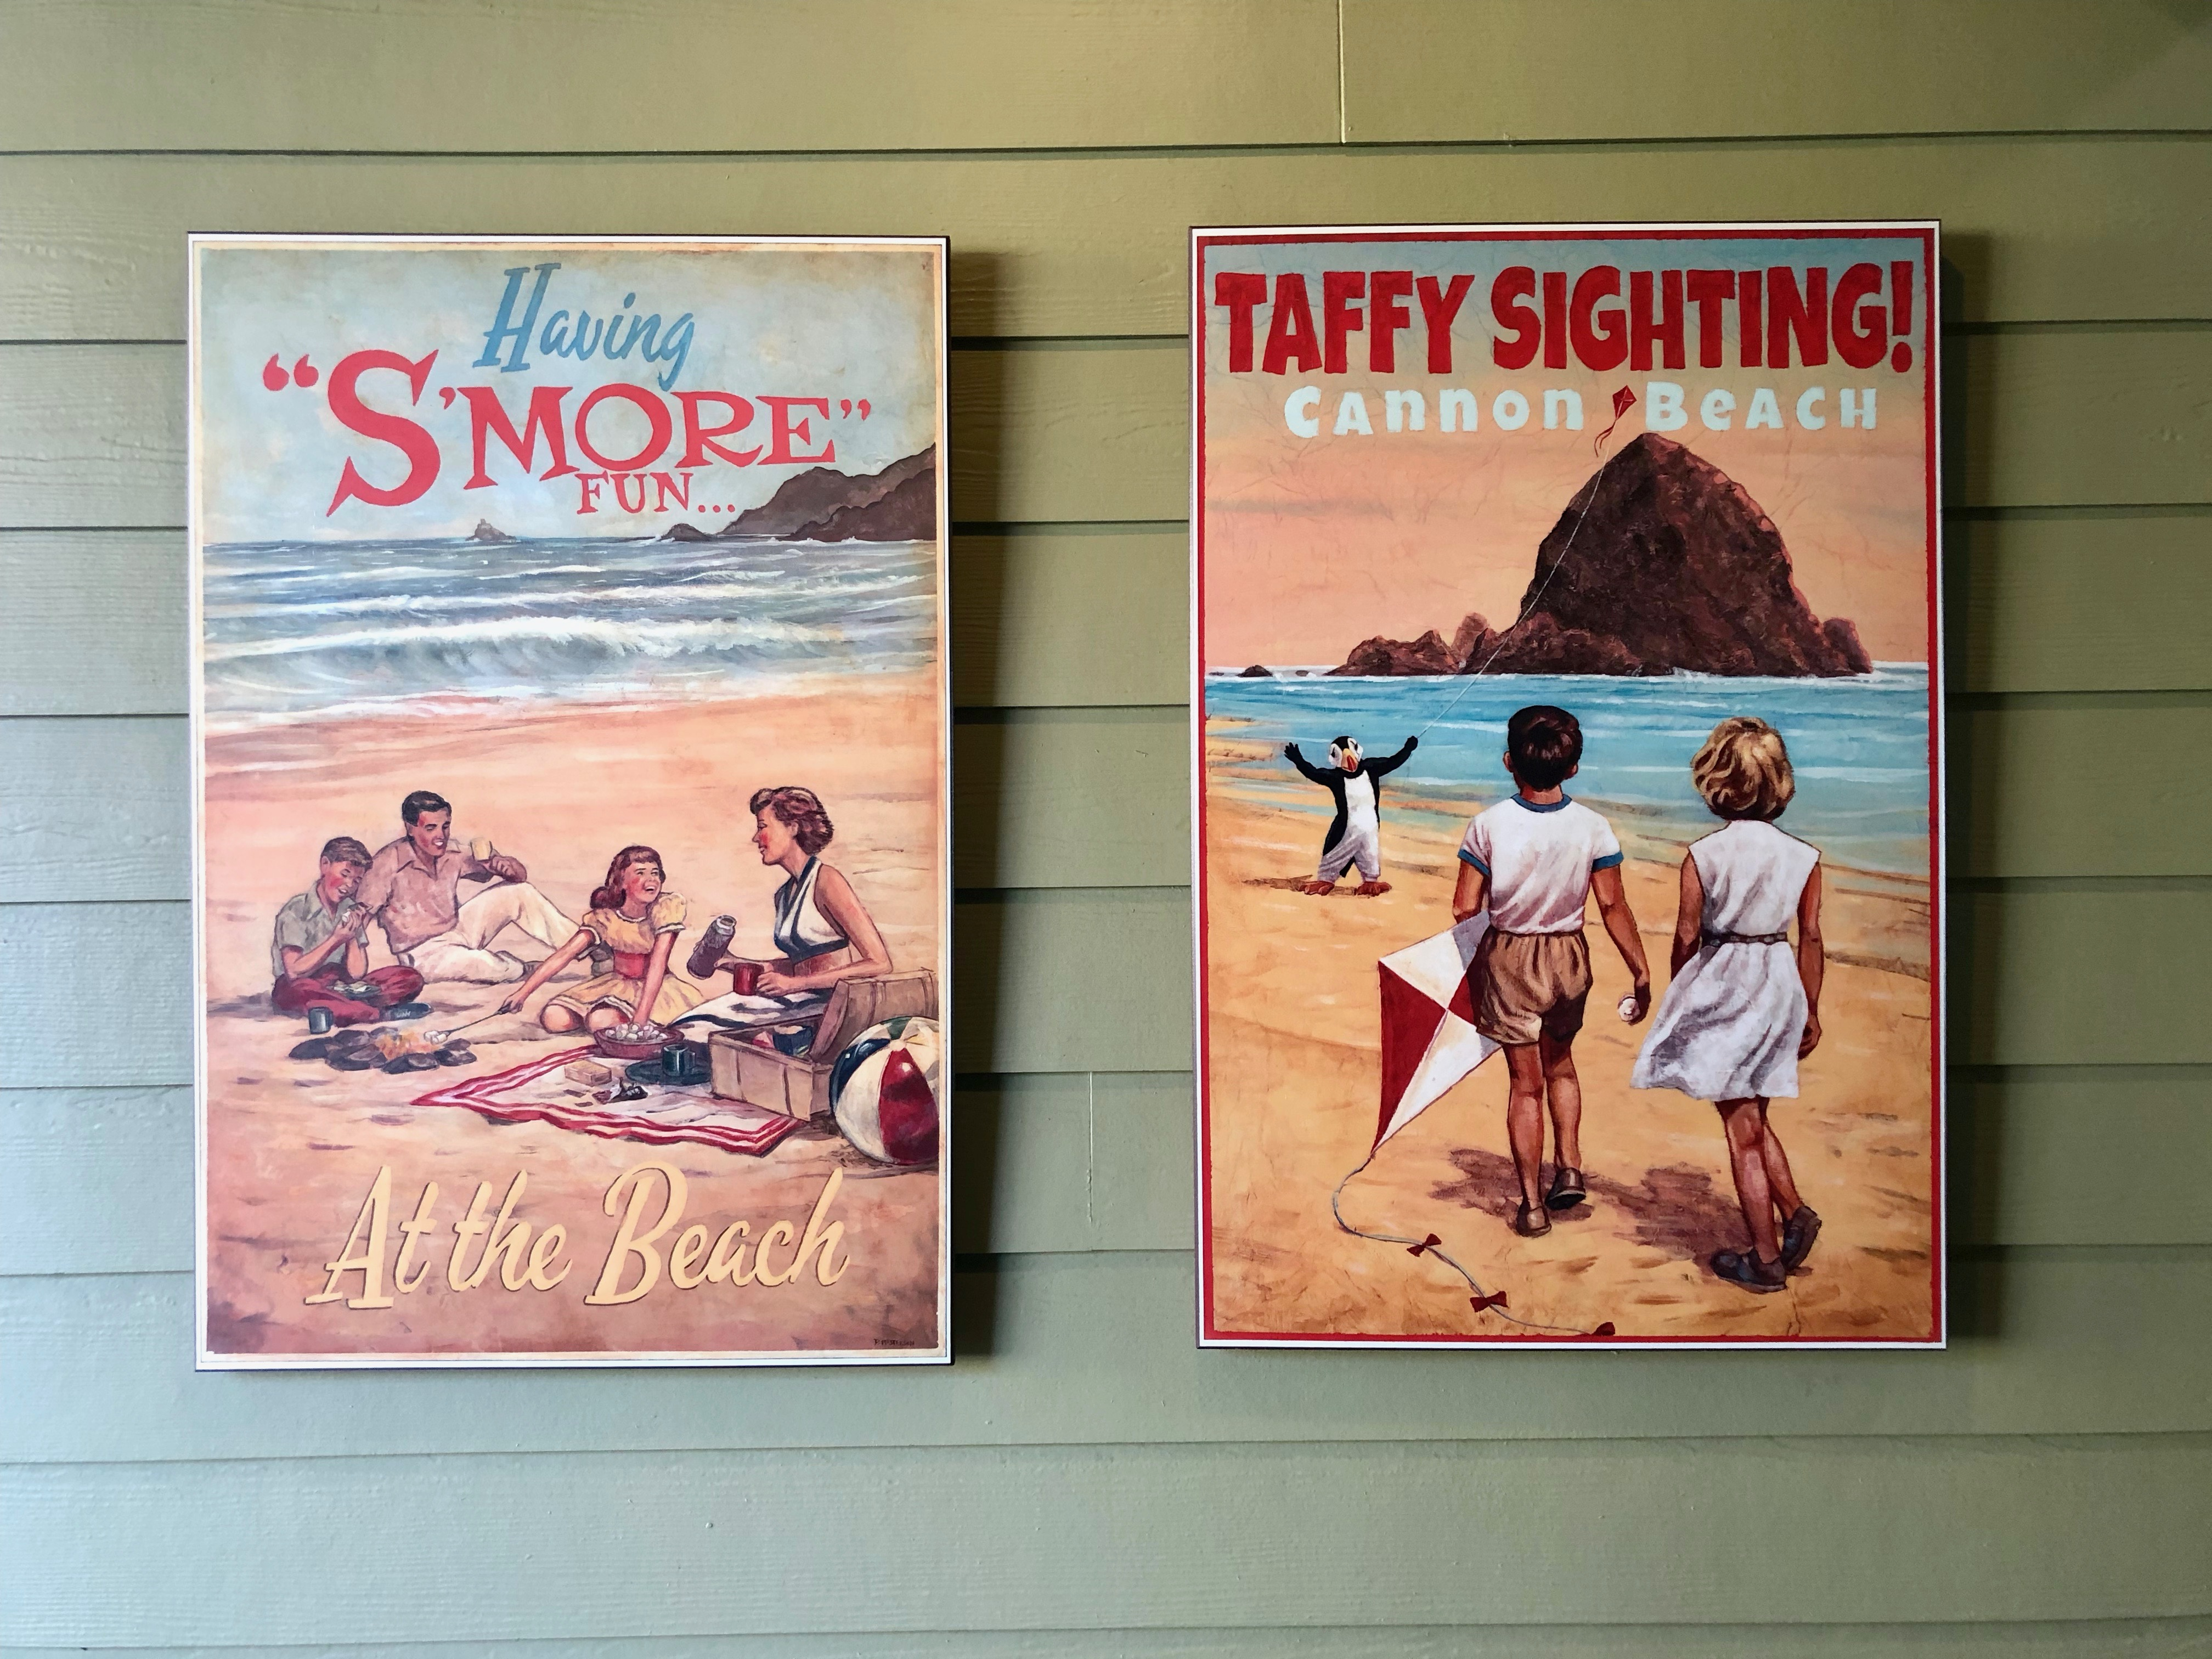 Vintage posters at the Surfsand Resort in Cannon Beach.